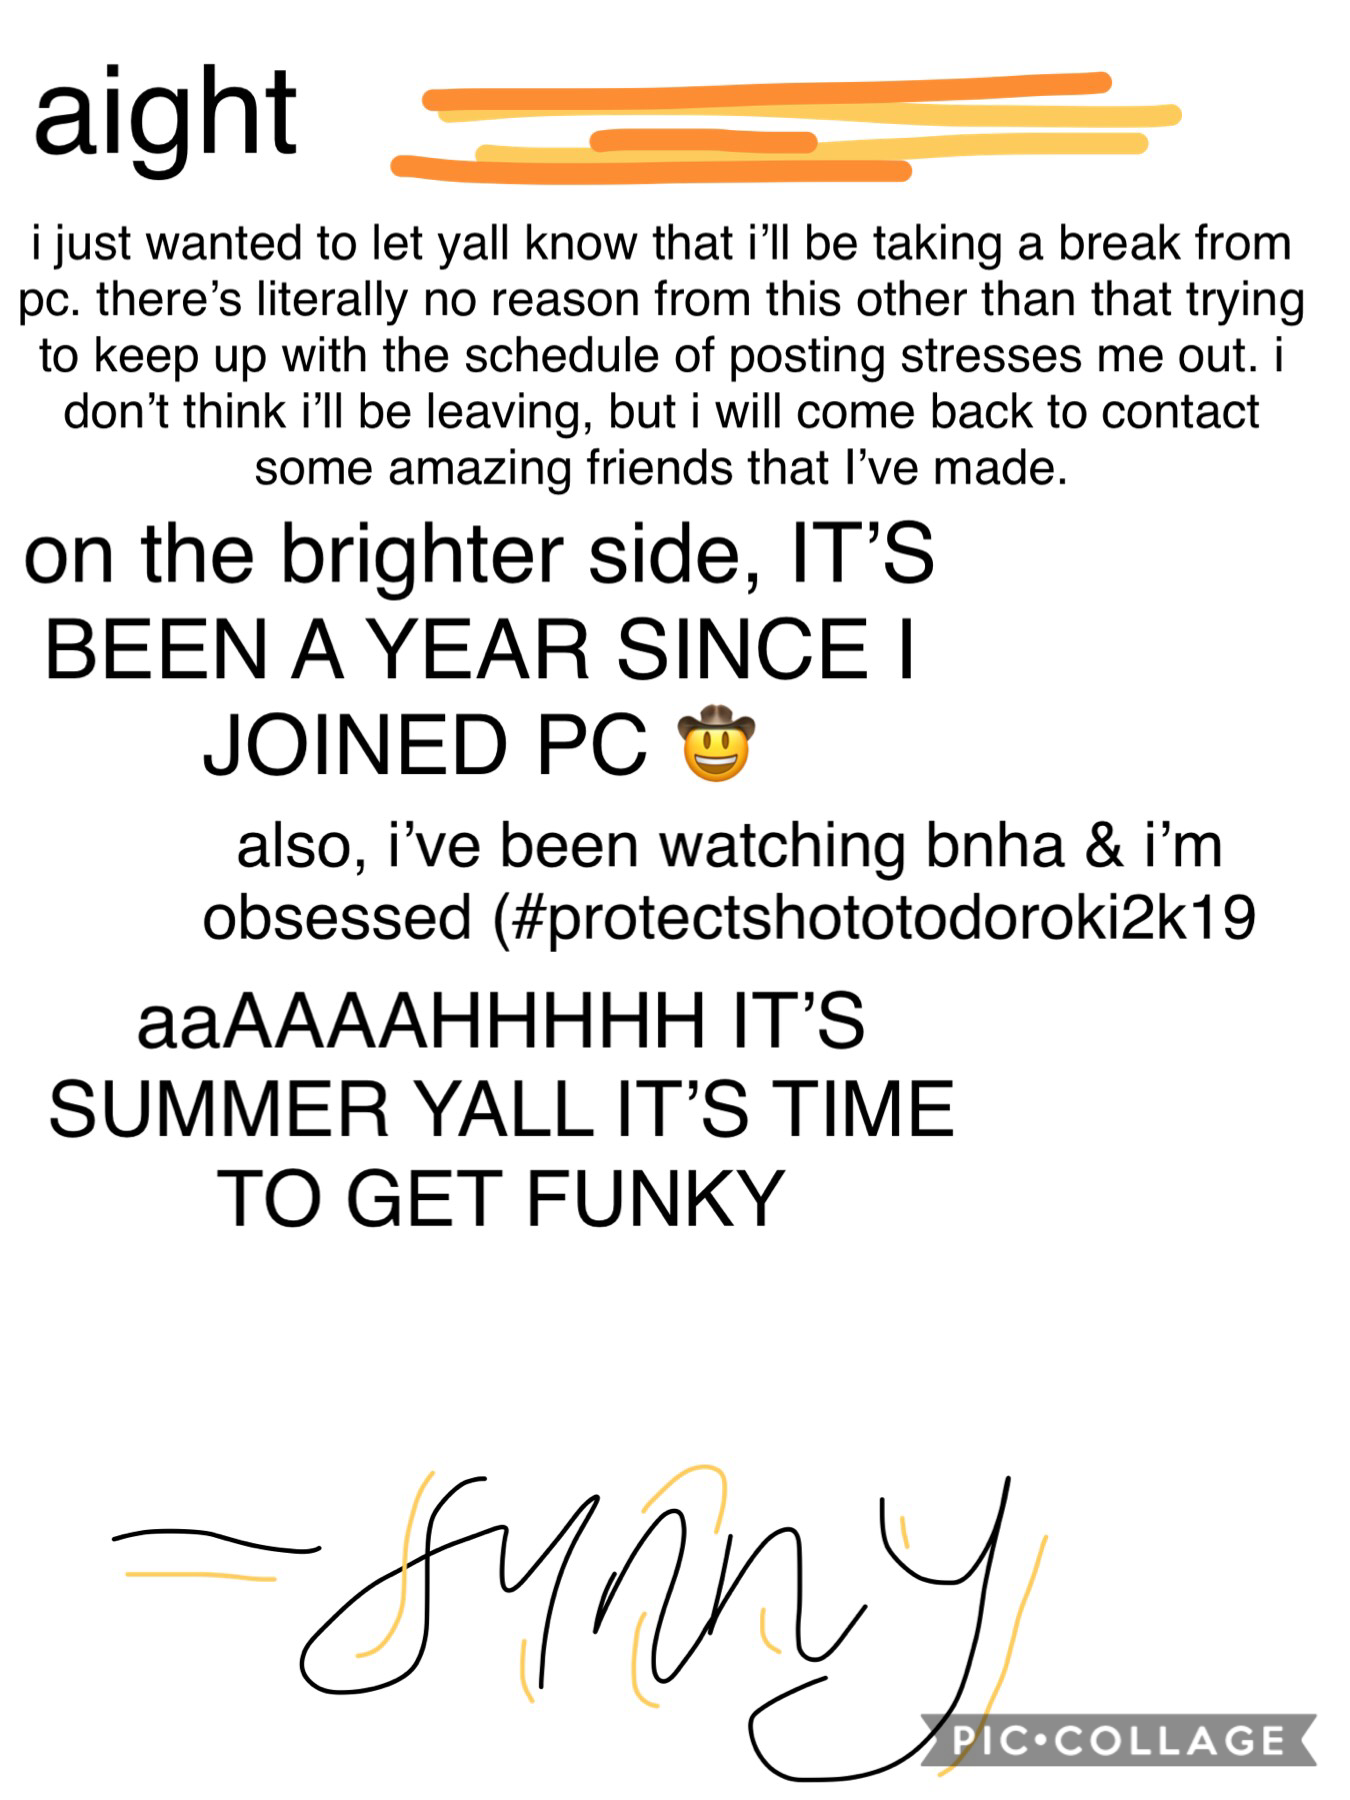 it's summer yall IT'S TIME TO GET FUNKY